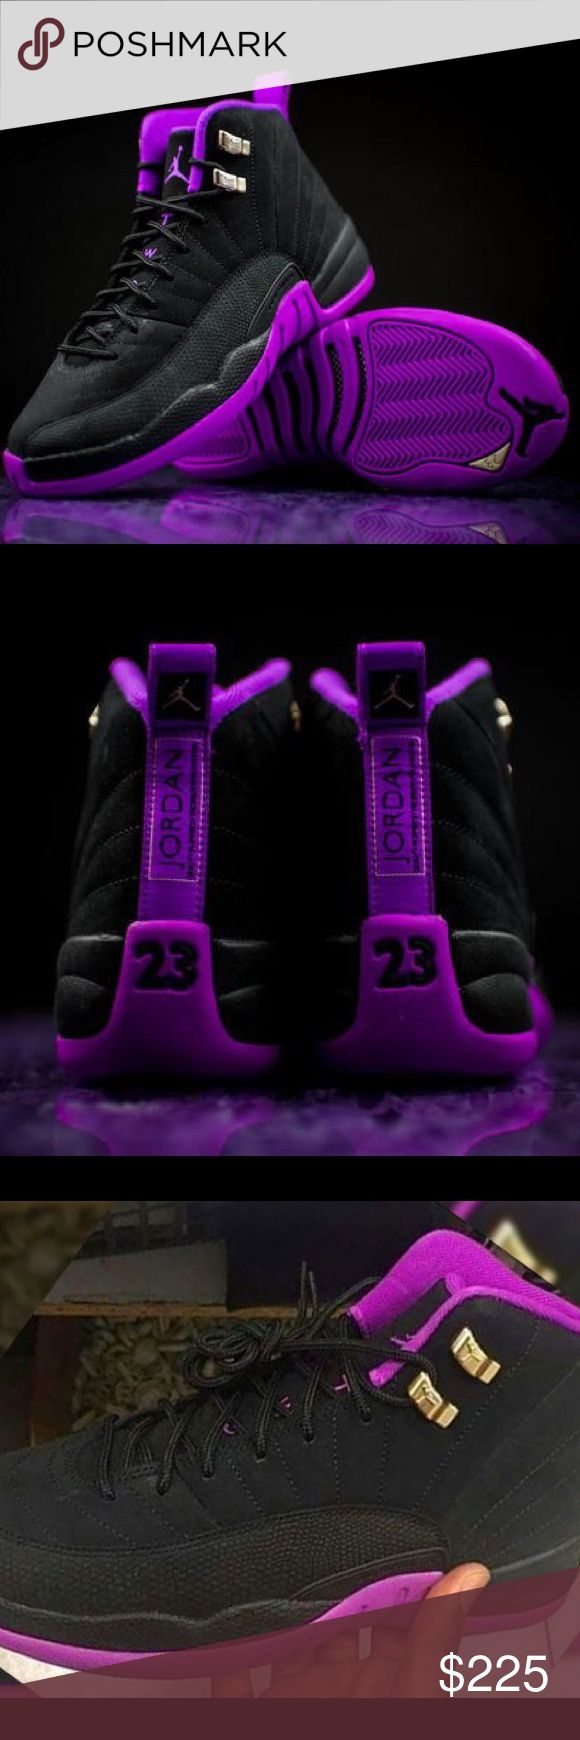 AIR JORDAN RETRO 12'sVARSITY PURPLE/BLACK AIR JORDAN RETRO 12'sVARSITY PURPLE/BLACKGIRL SIZES Thru️️ORDERS ONLY‼️ Jordan Shoes Athletic Shoes